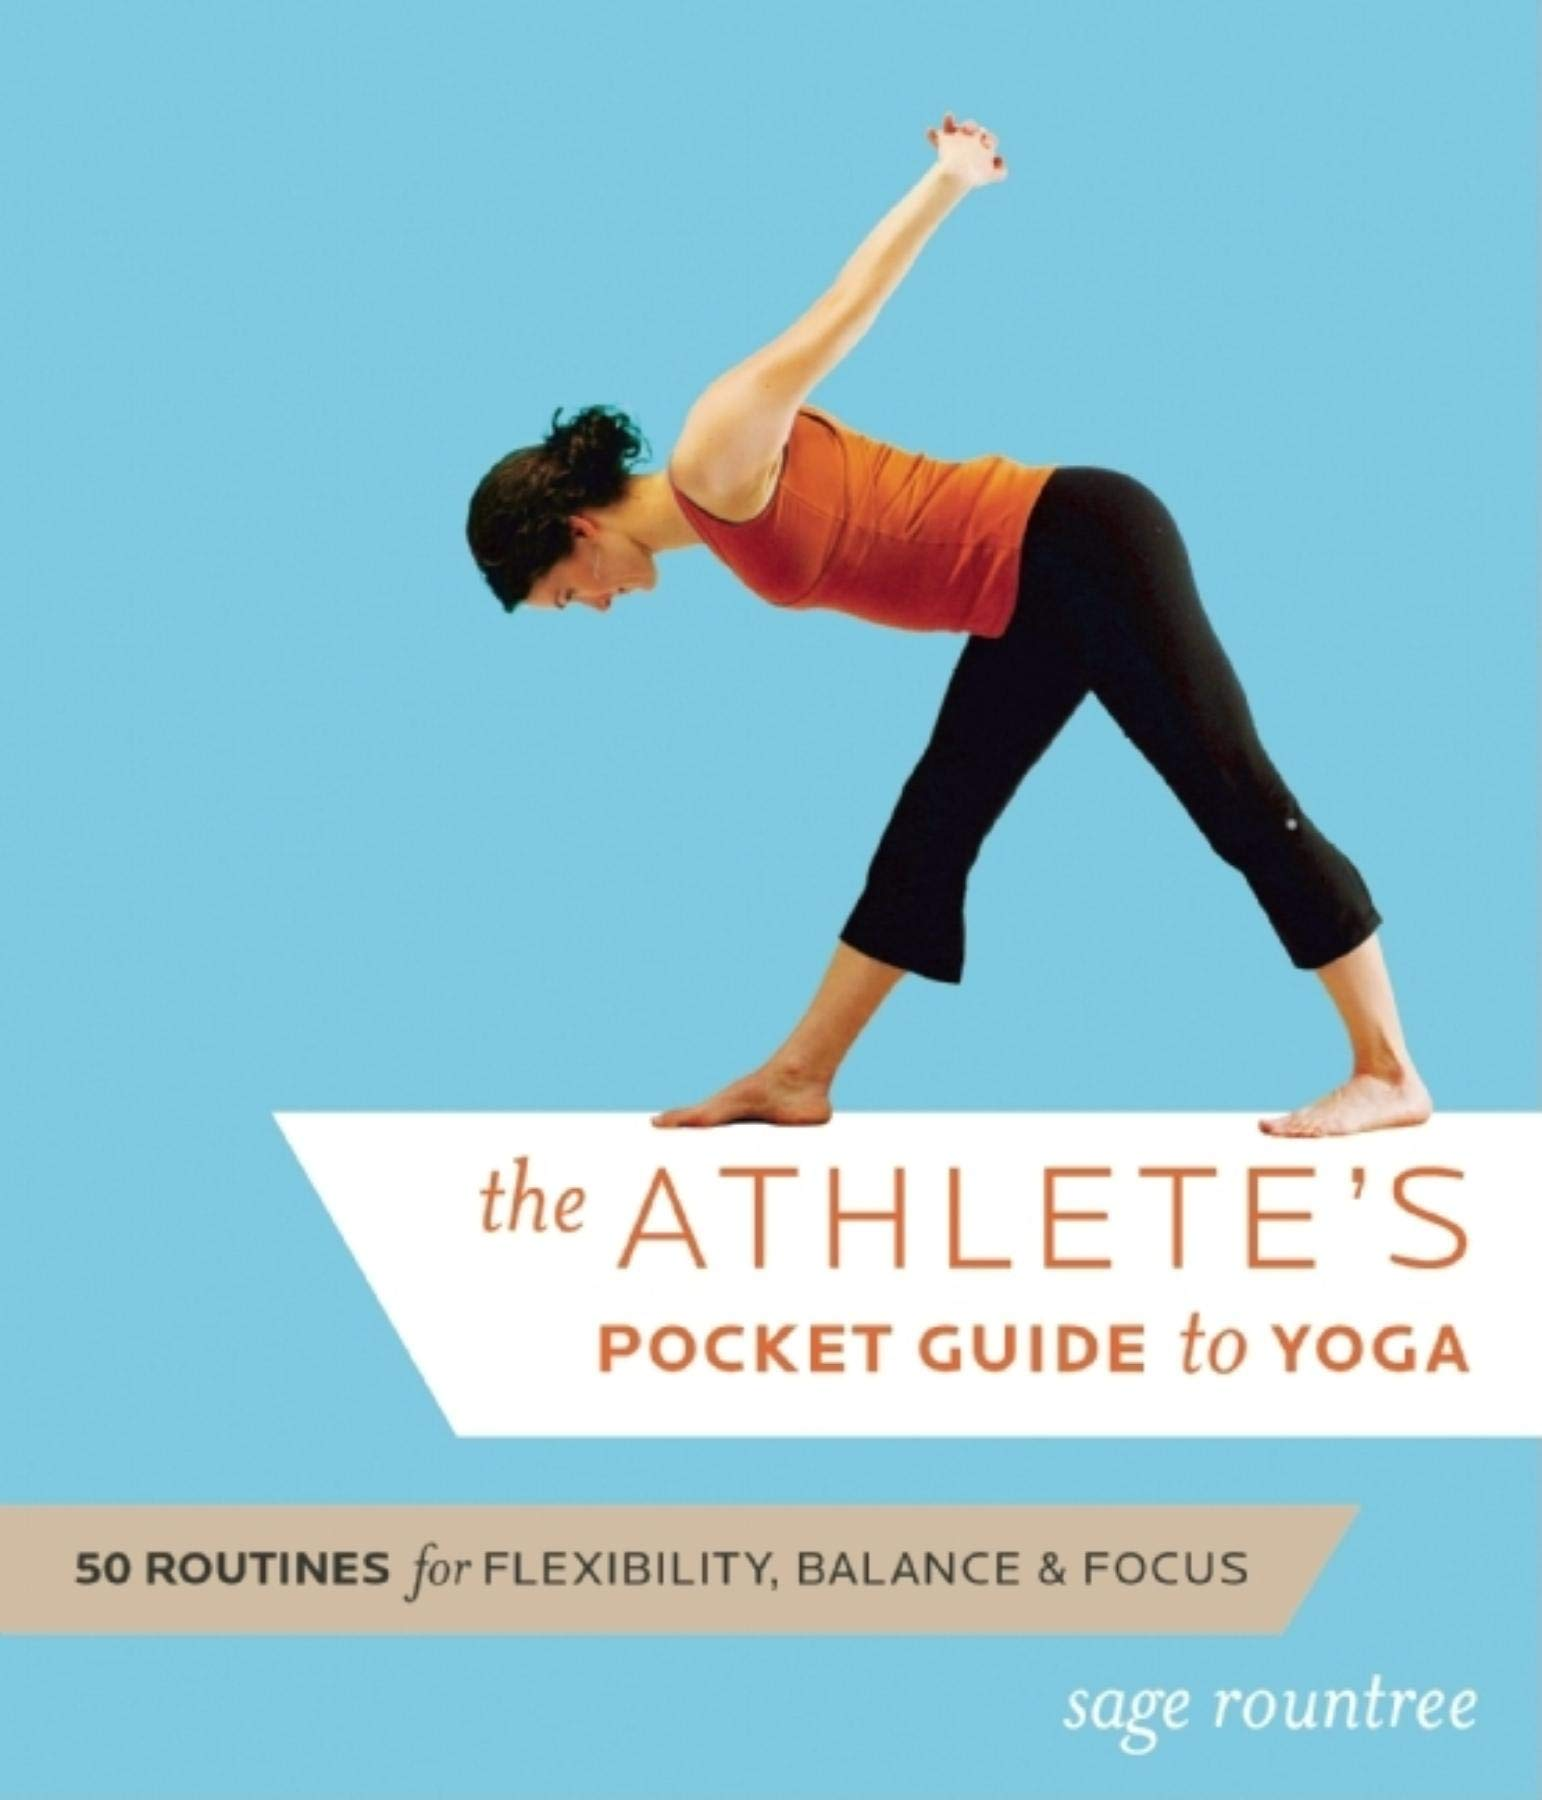 The Athlete's Pocket Guide to Yoga: 50 Routines for Flexibility